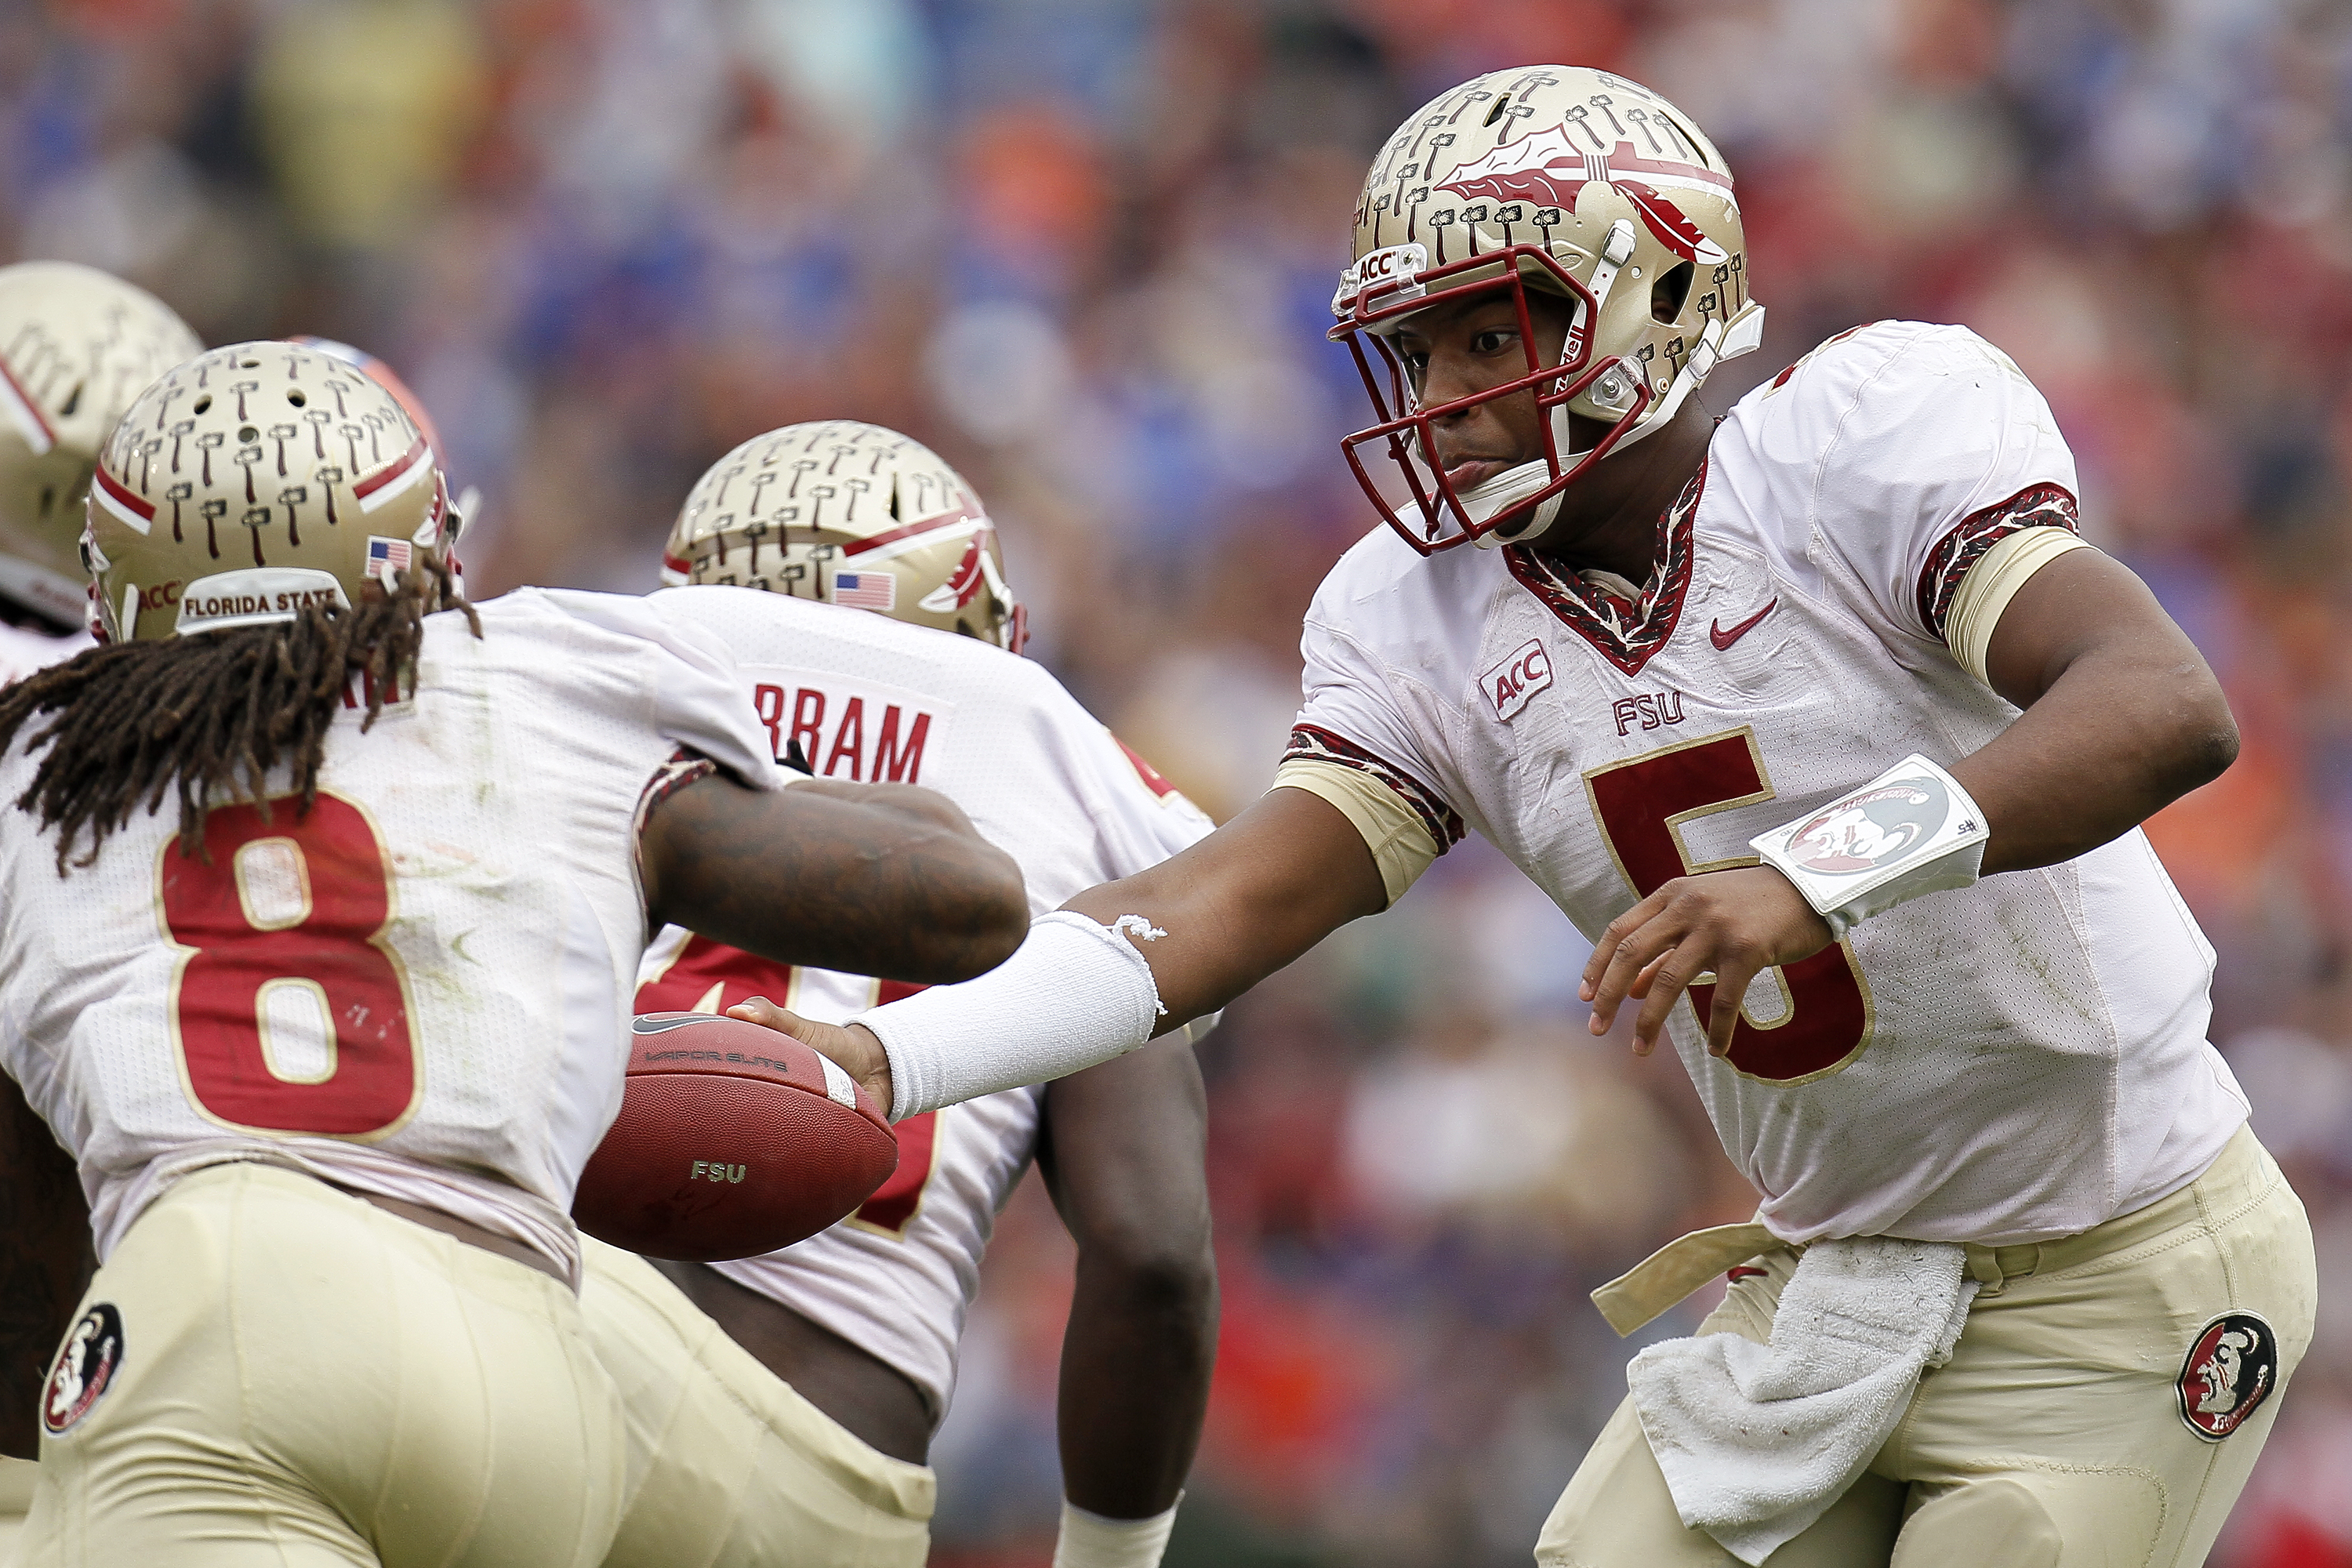 The top 25 teams in college football, re-ranked by fan